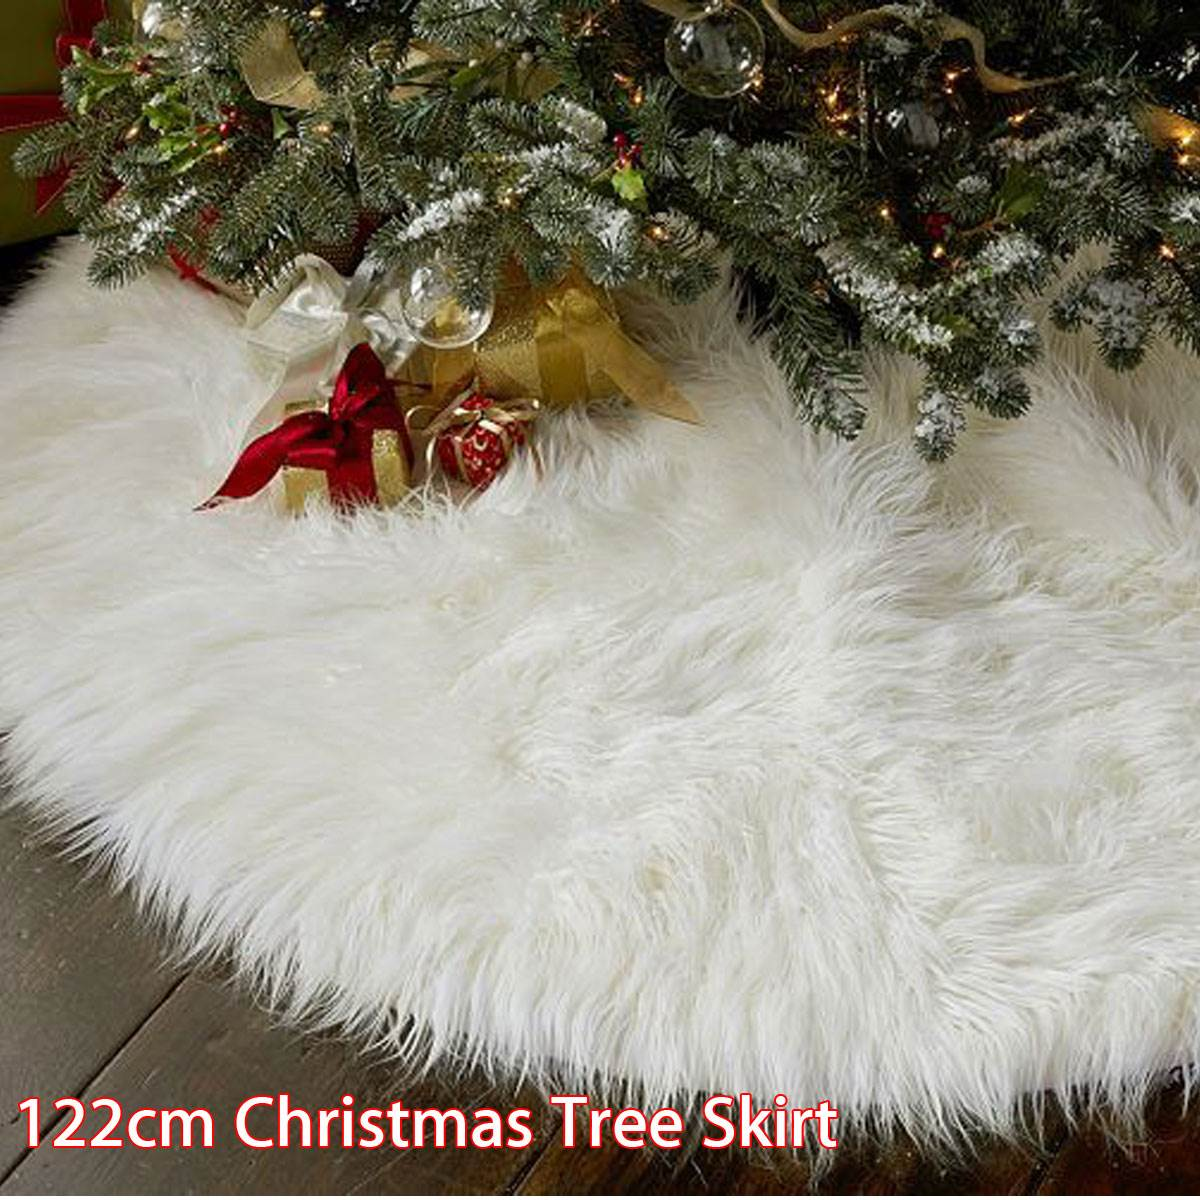 aliexpresscom buy 122cm plush white snowflake christmas tree skirt base floor mat cover round rug christmas decorations for home ornaments navidad from - Fur Christmas Tree Skirt